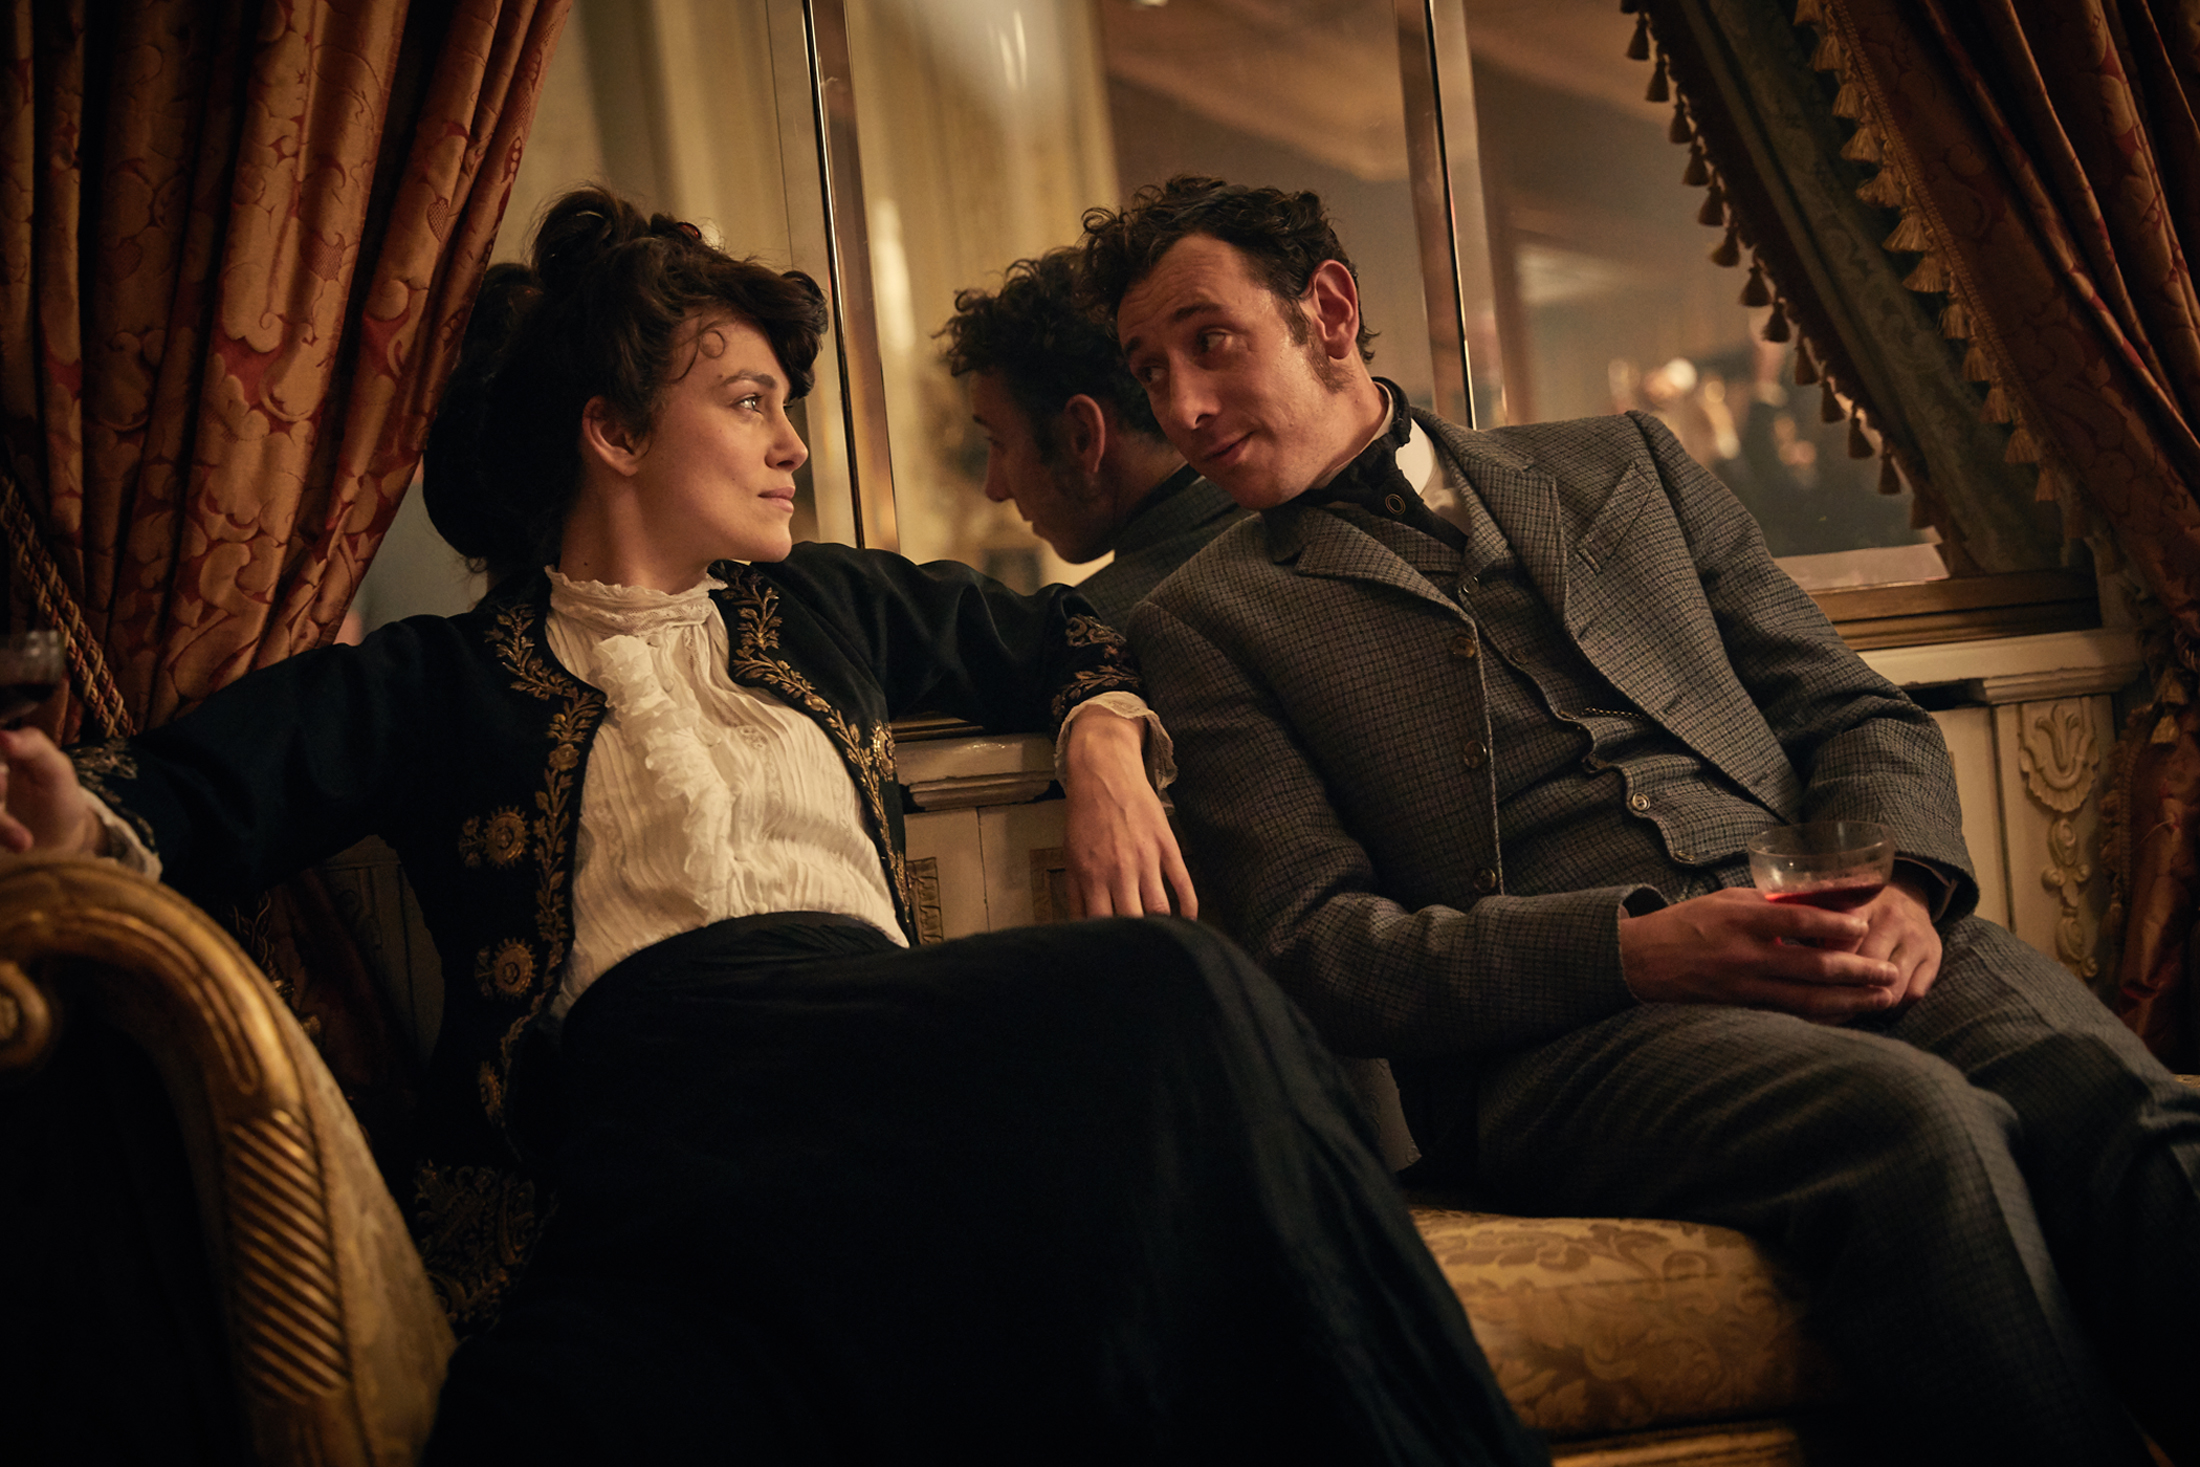 Keira Knightley and Ray Panthaki in Colette. Photo: Transmission Films